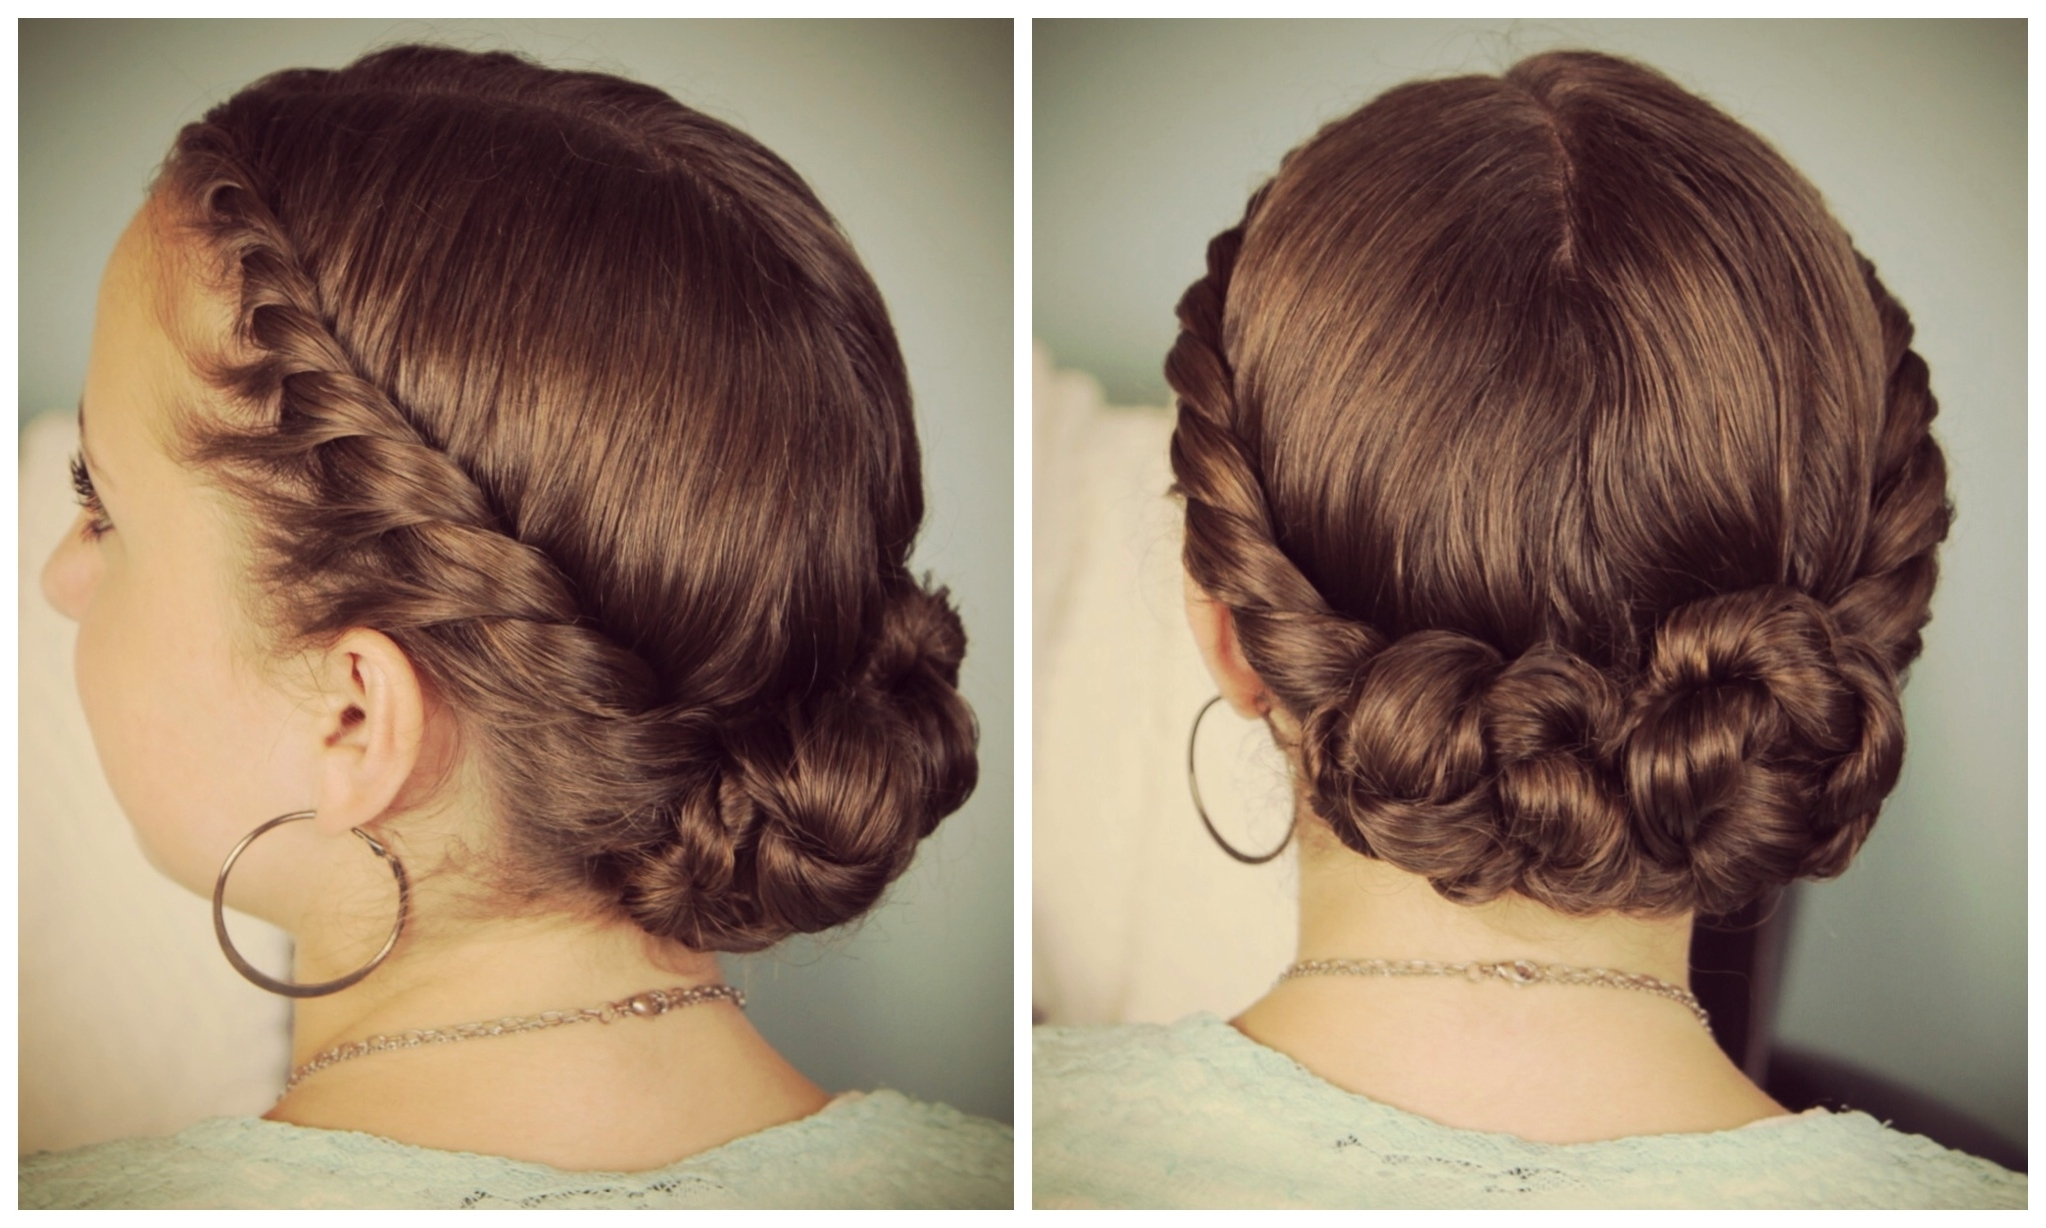 Double Twist Bun Updo Homecoming Hairstyles | Medium Hair Styles Pertaining To Cute Girls Updo Hairstyles (View 15 of 15)